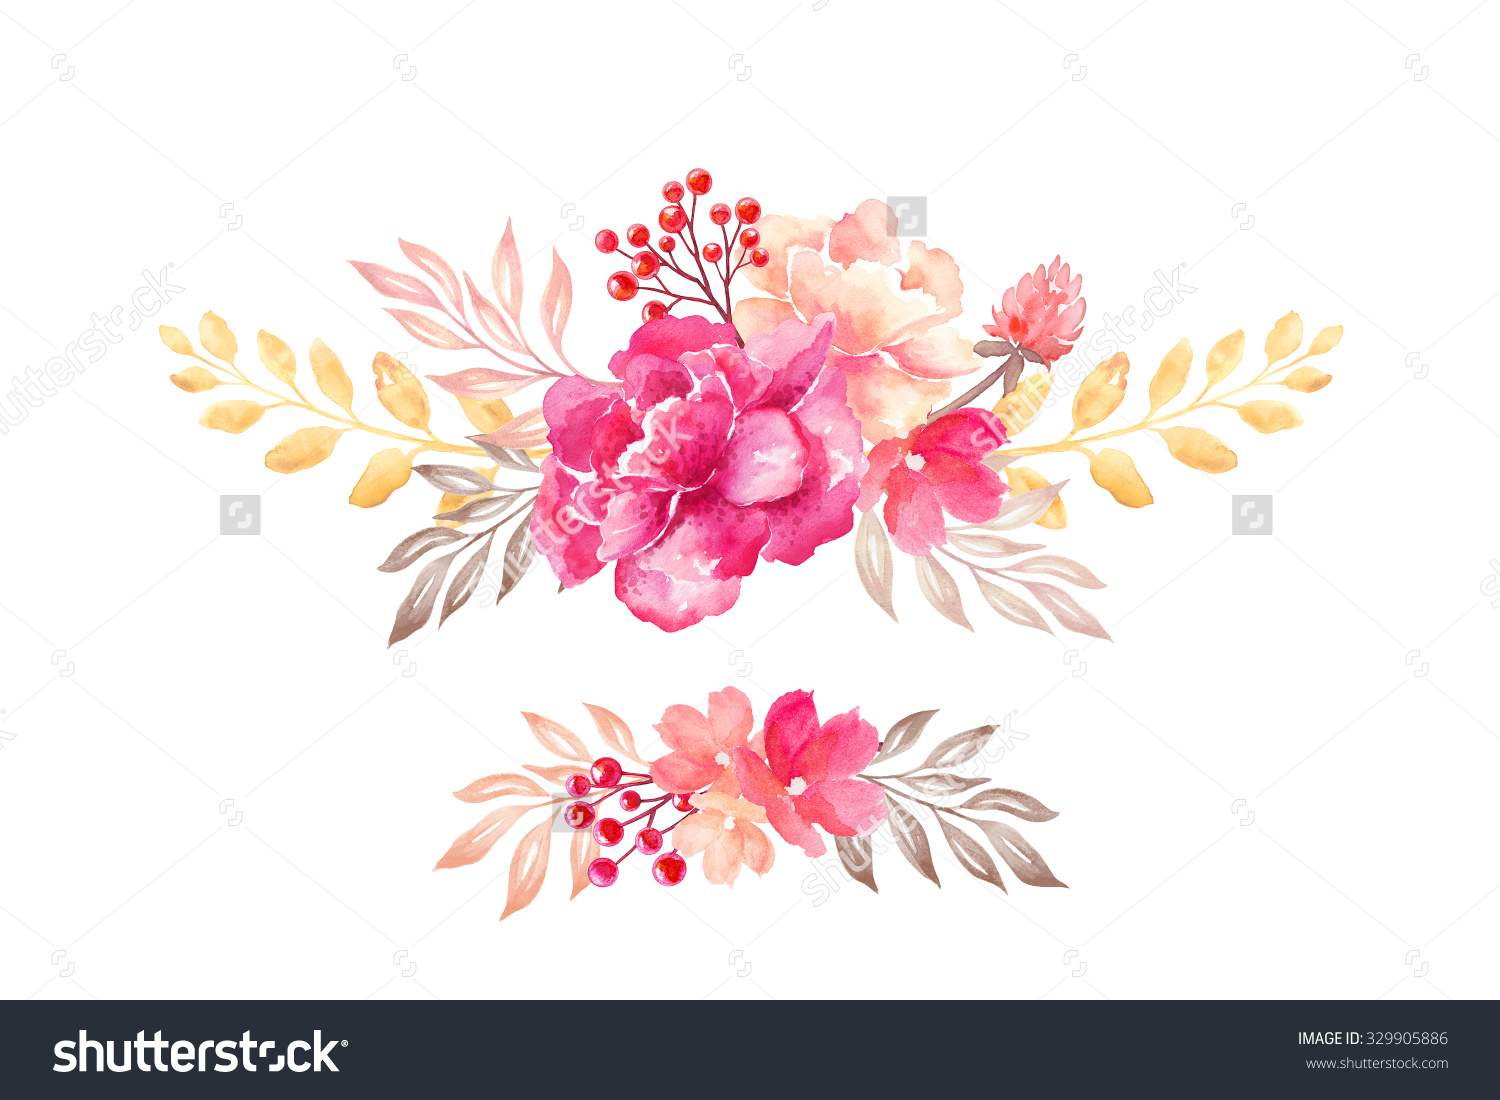 Elements clipart floral Bouquet Arrangements Flower arrangement design